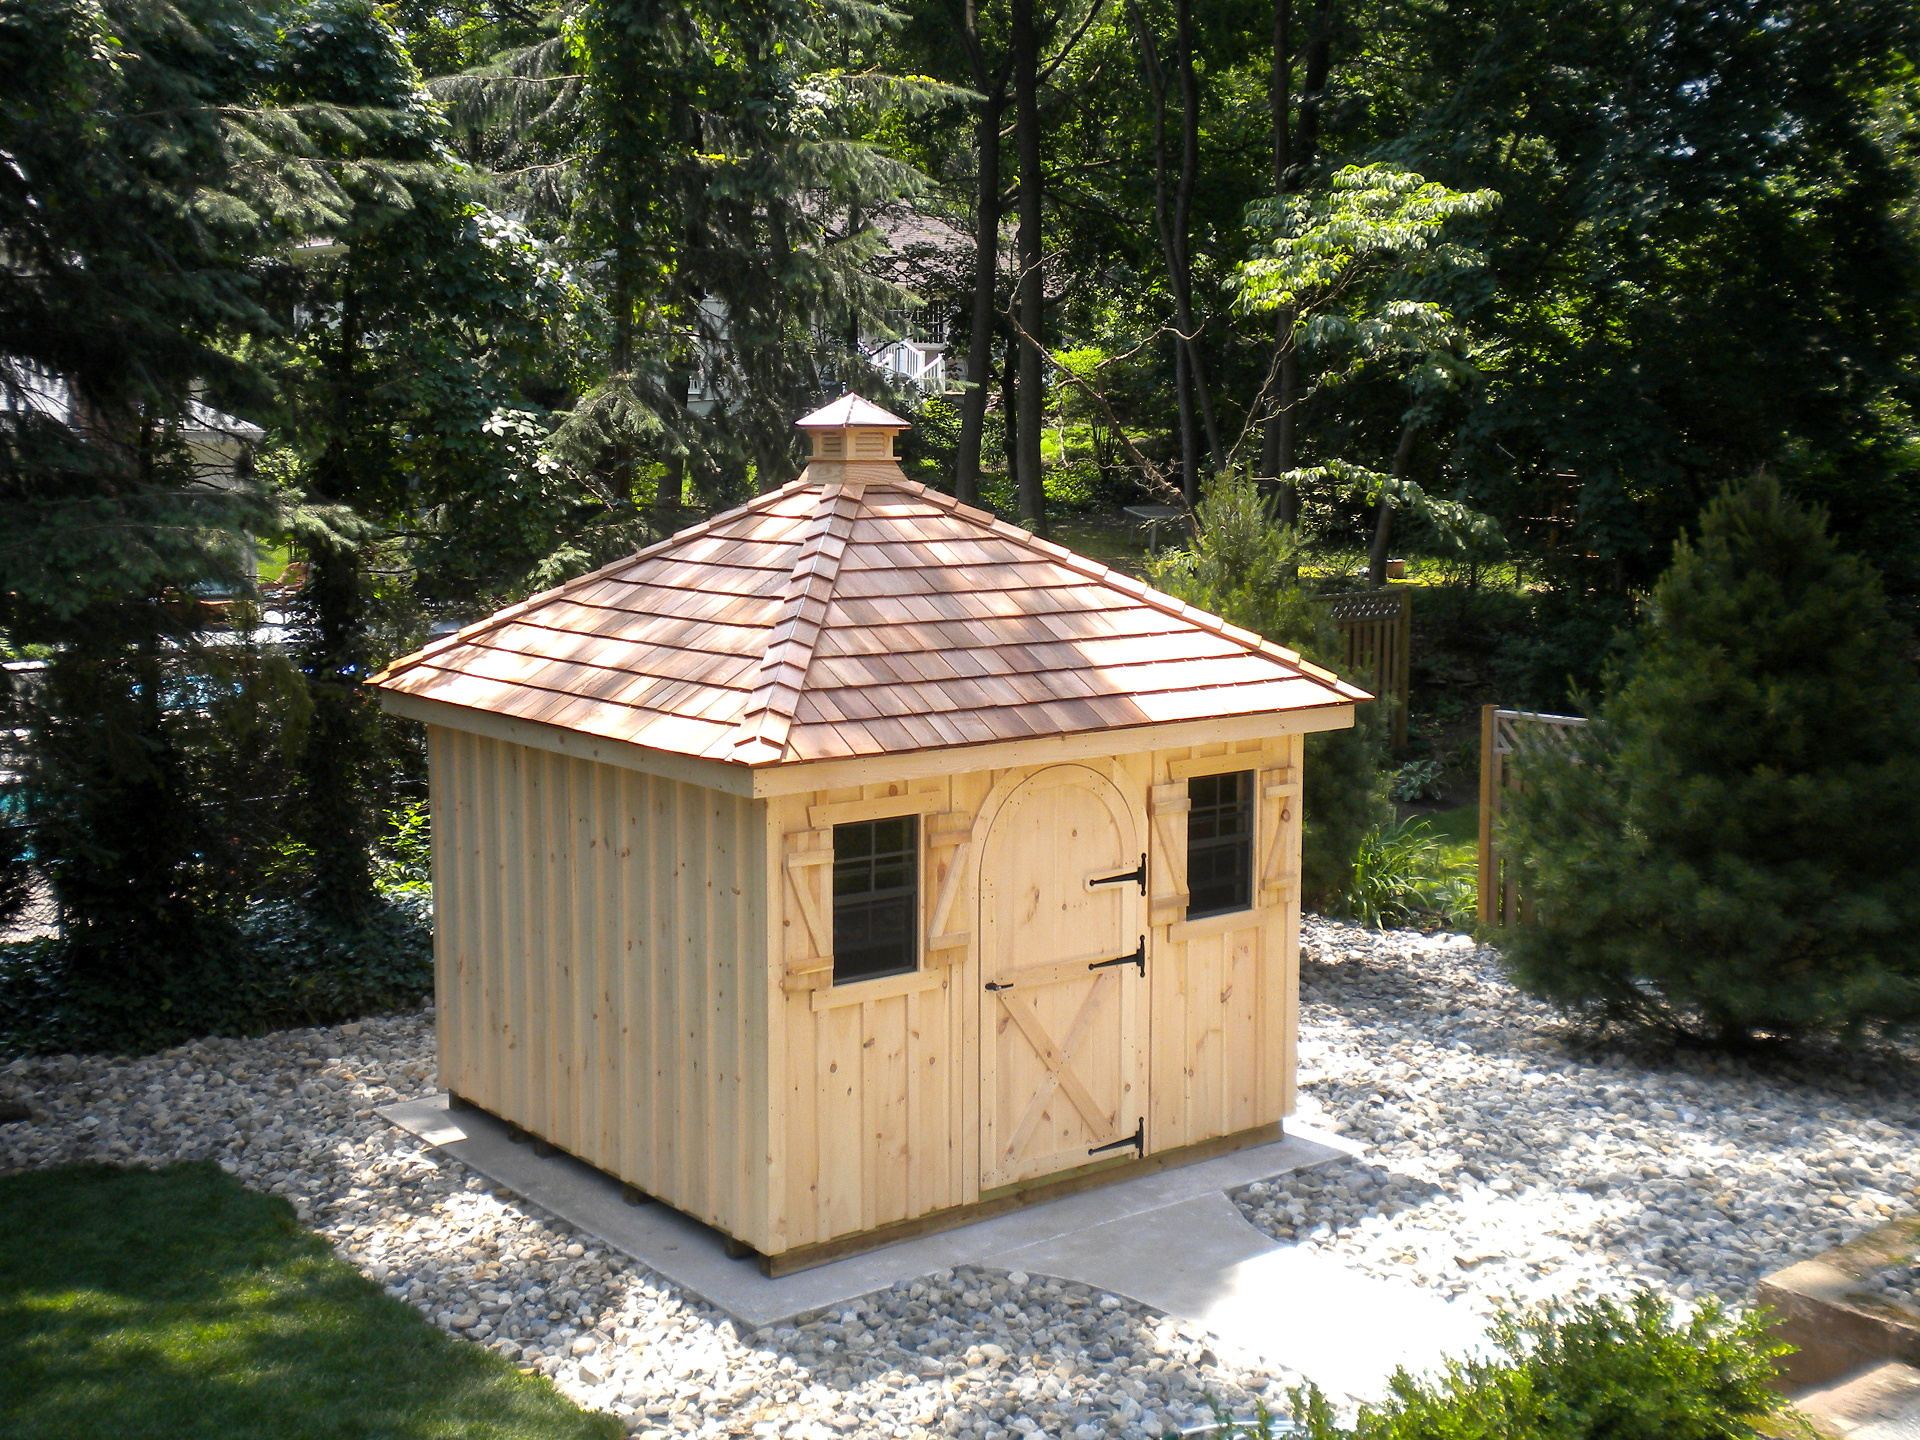 Premo Products For Quality Sheds In The Syracuse Ny And Surrounding Areas Poly Furniture Gazebos Pavilions Pergolas Pool Houses Car Ports Garages Outdoor Poly Furniture We Deliver Simply The Best